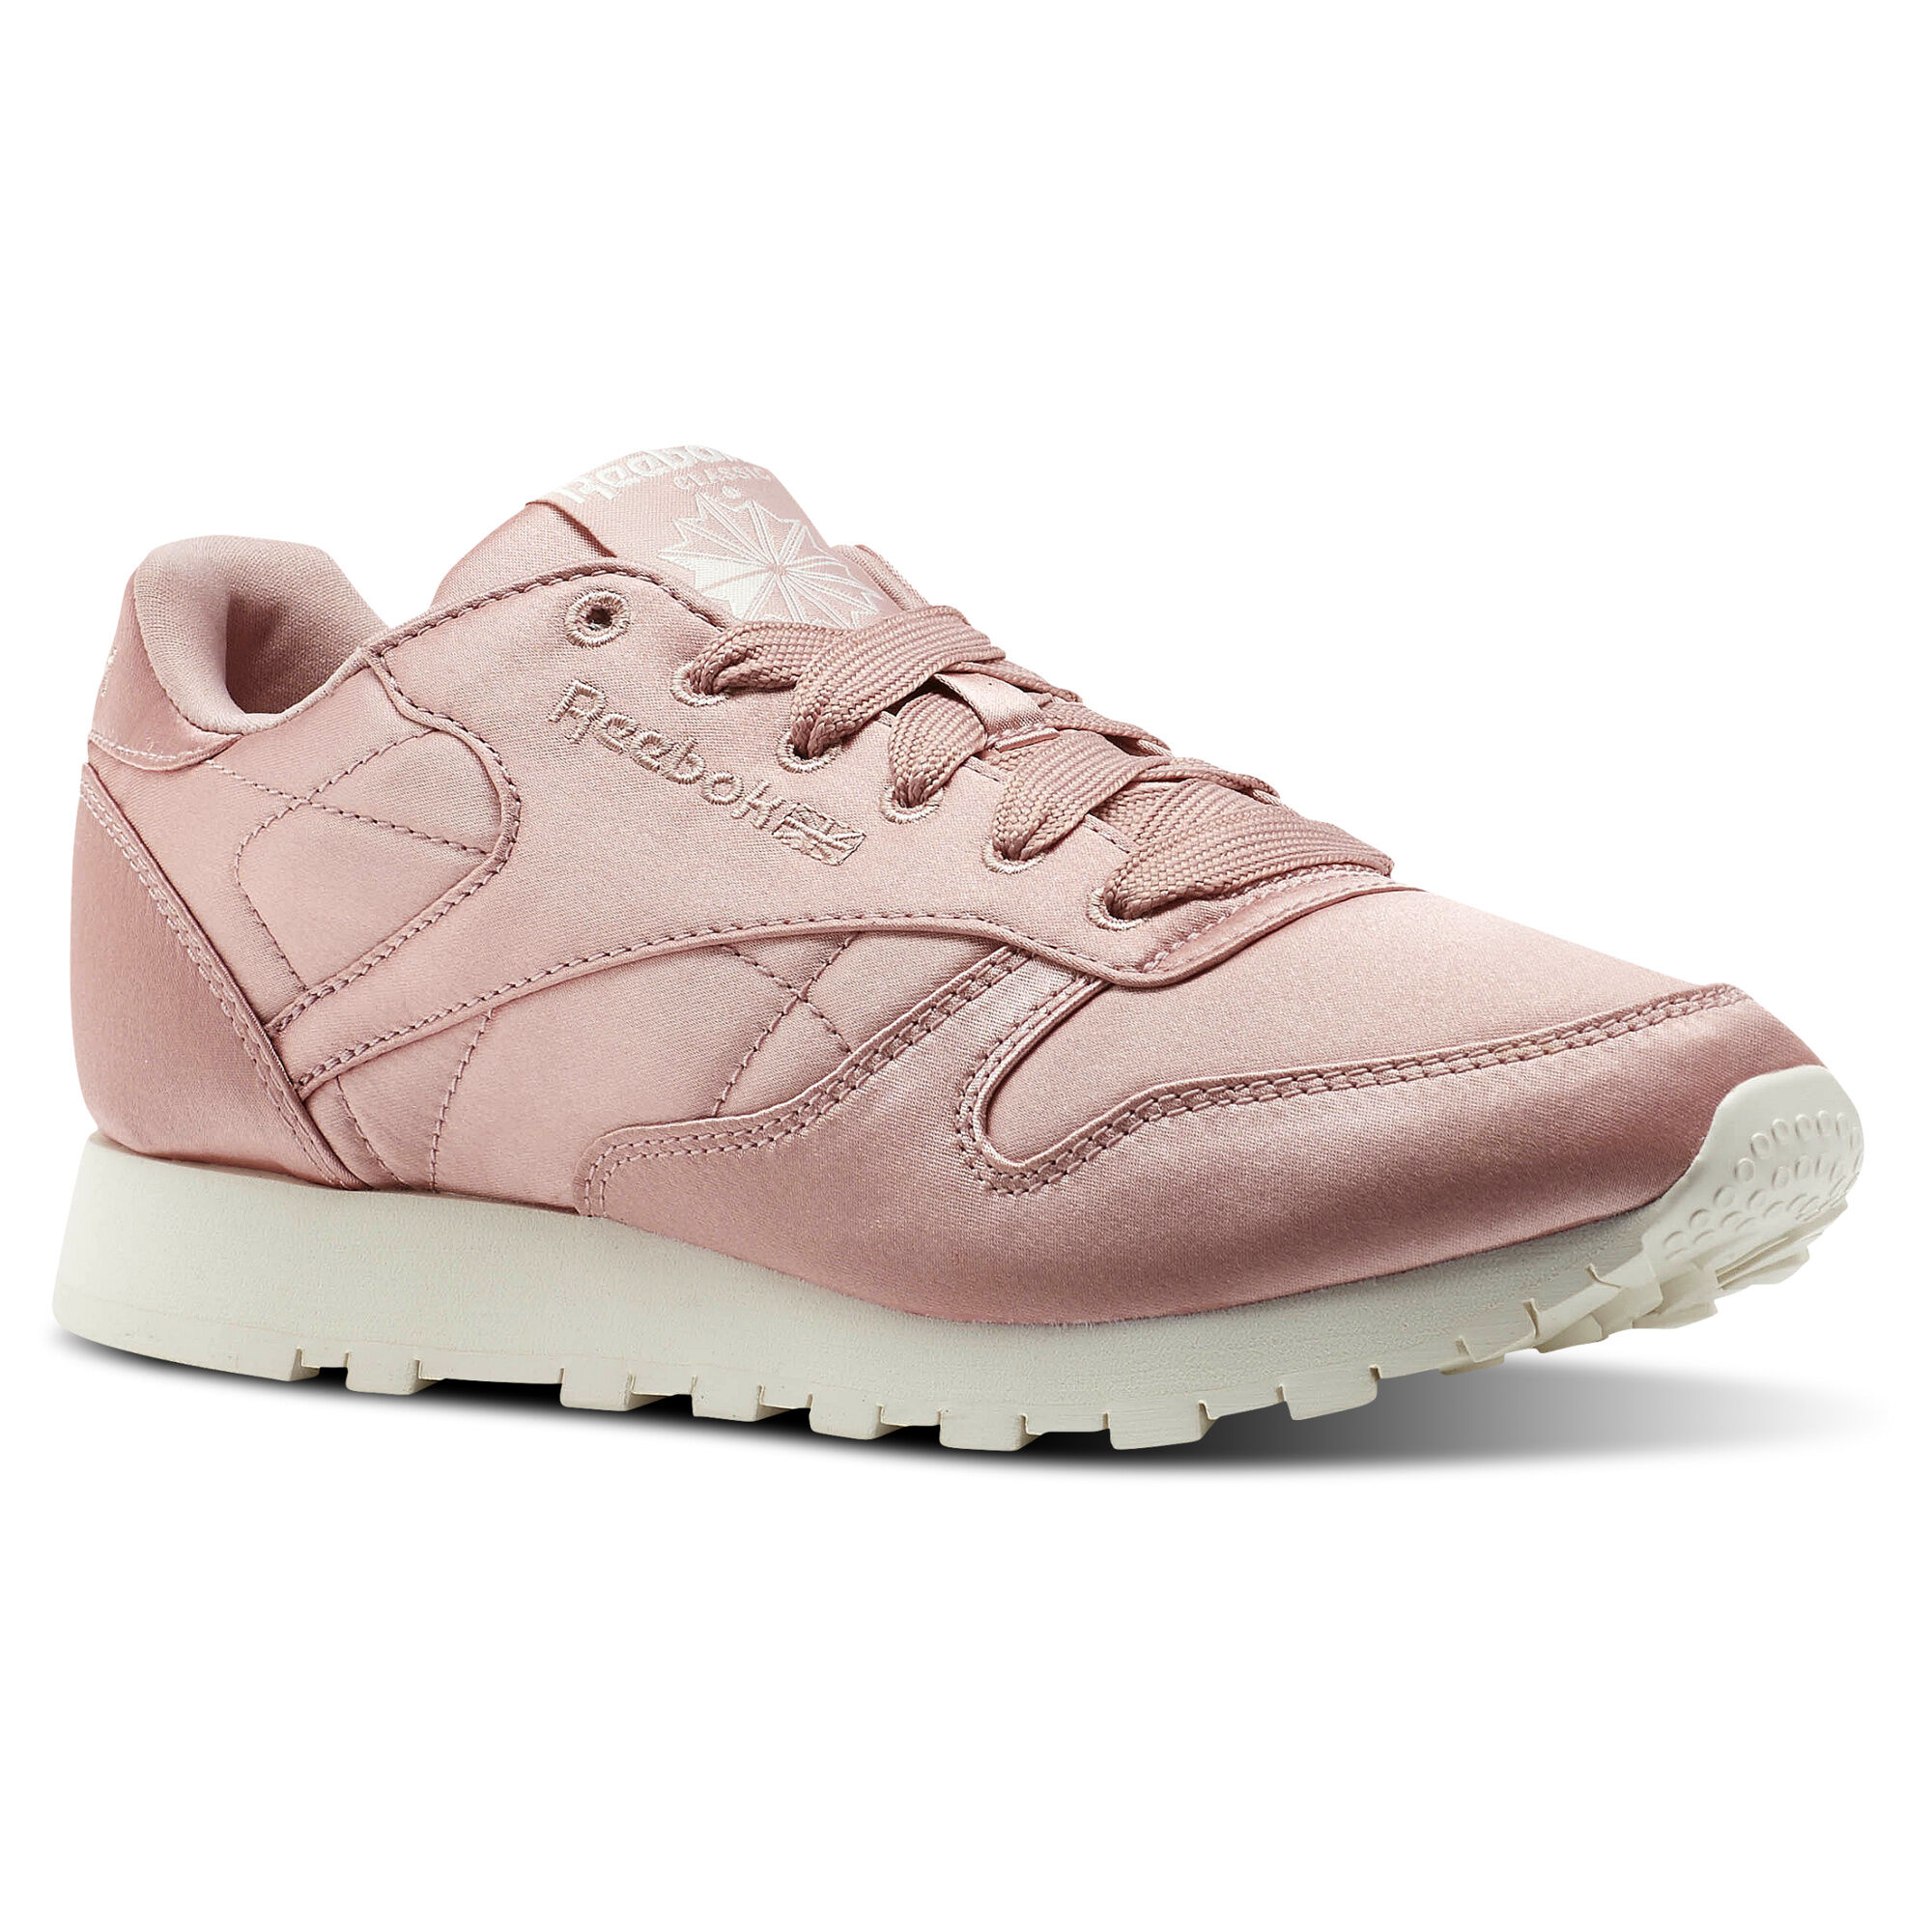 Reebok Classic Chaussures CLASSIC LEATHER SATIN